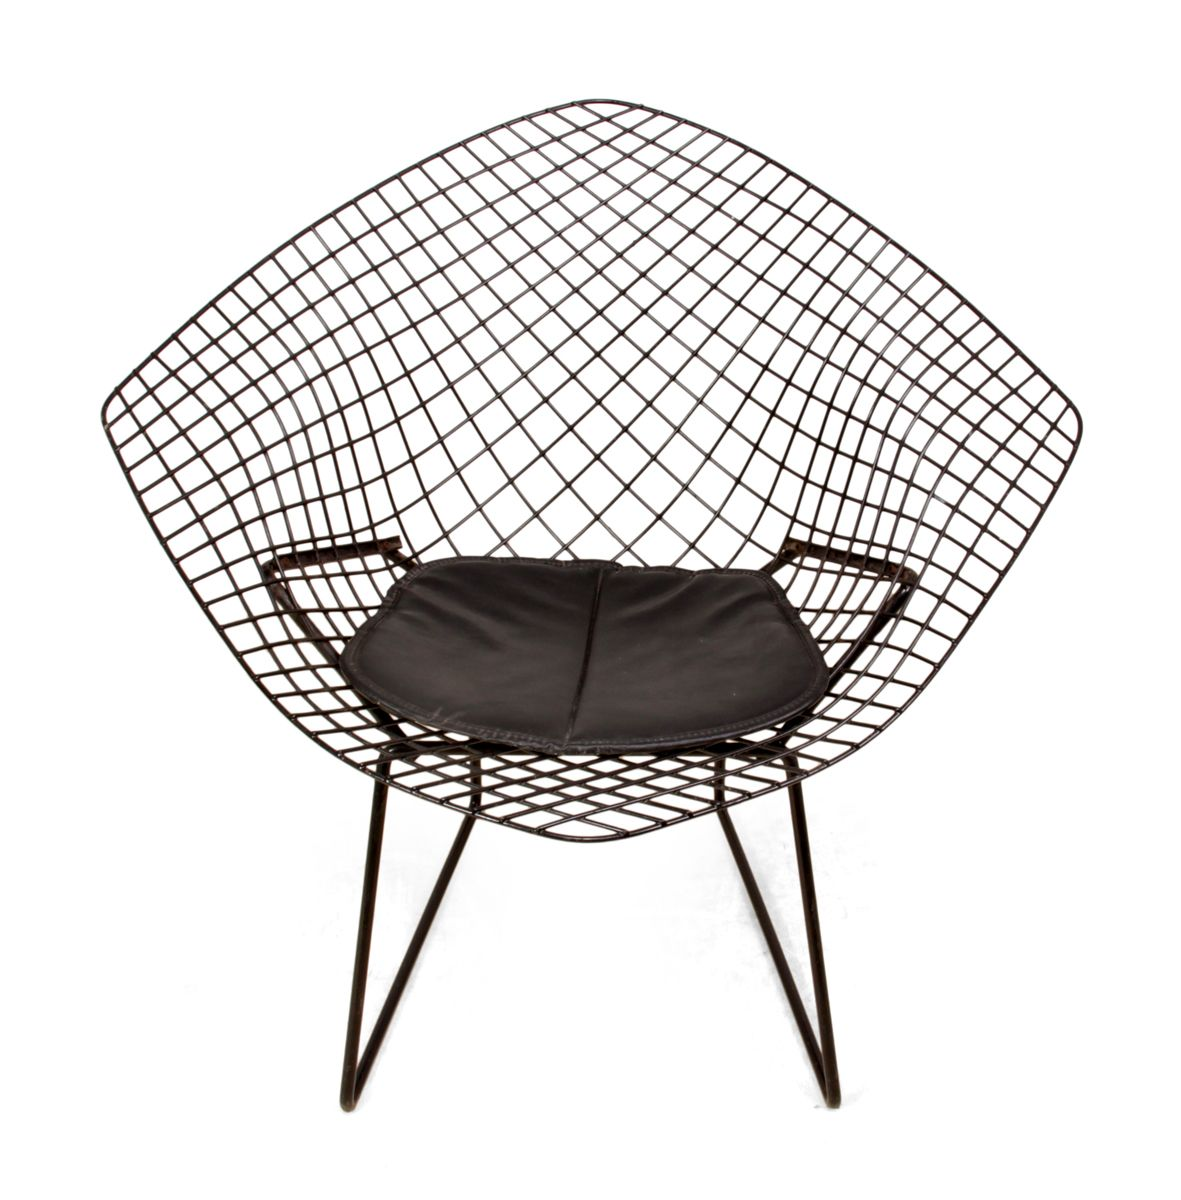 Harry Bertoia Chair Diamond Chair By Harry Bertoia 1960s For Sale At Pamono